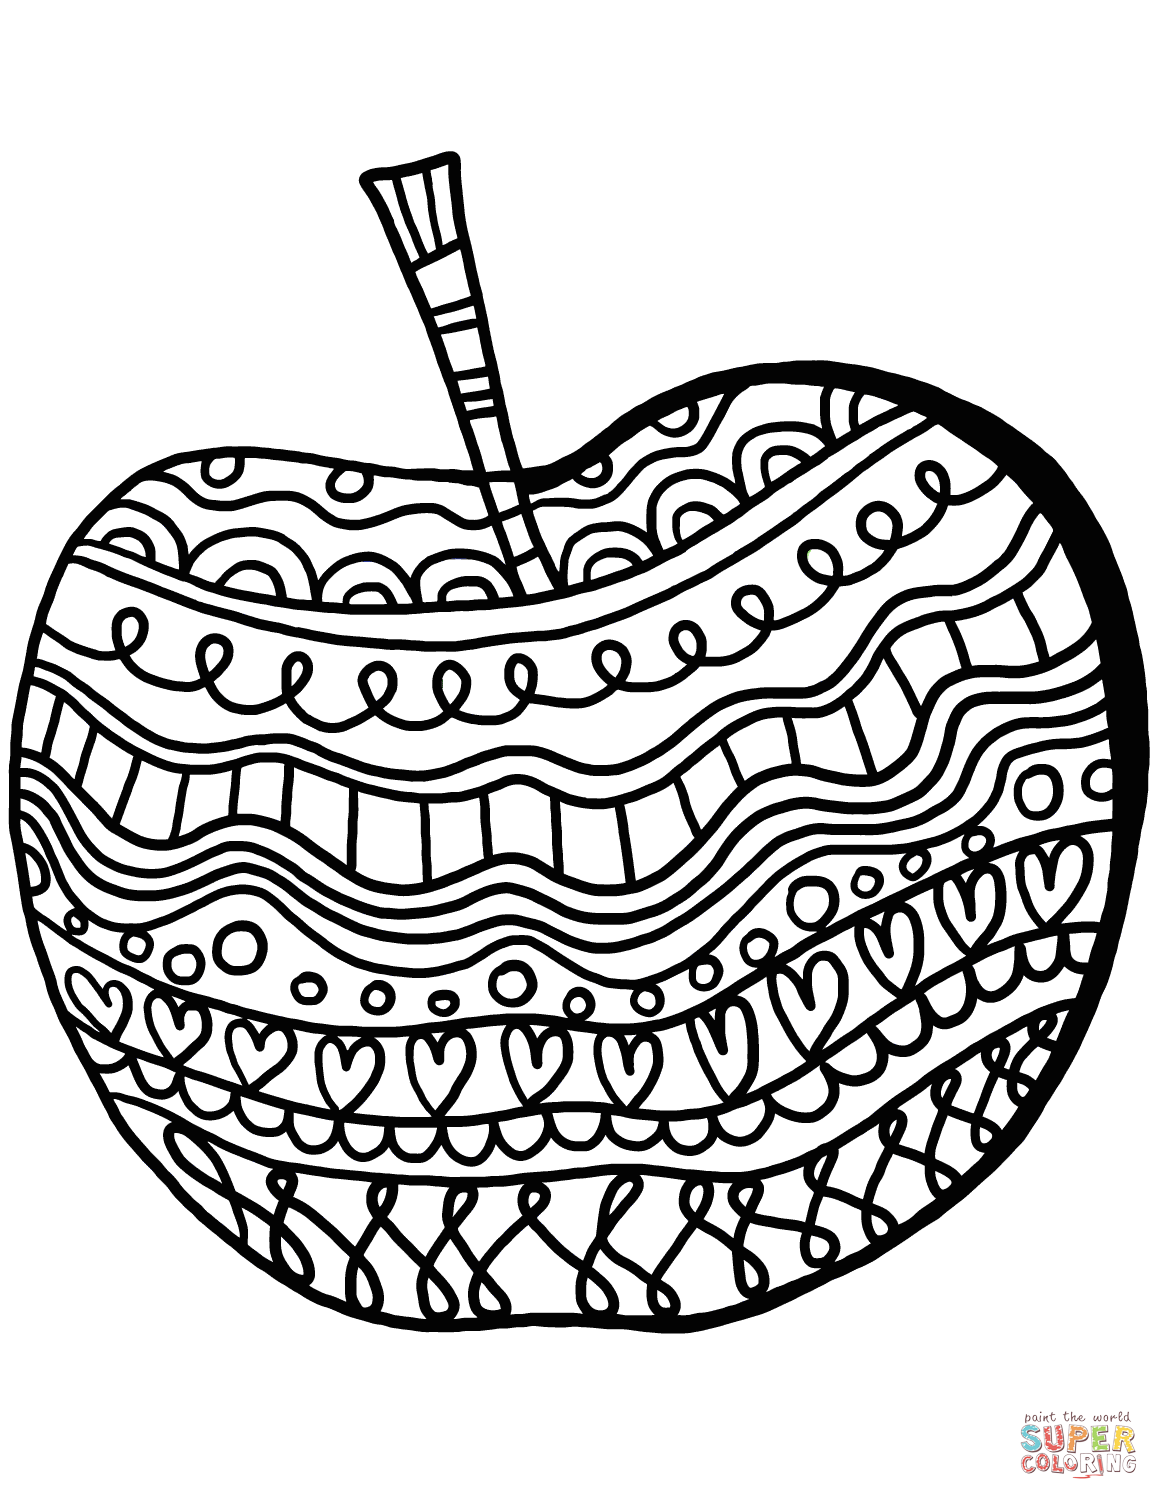 a for apple coloring page cartoon fruits coloring pages crafts and worksheets for coloring apple a for page